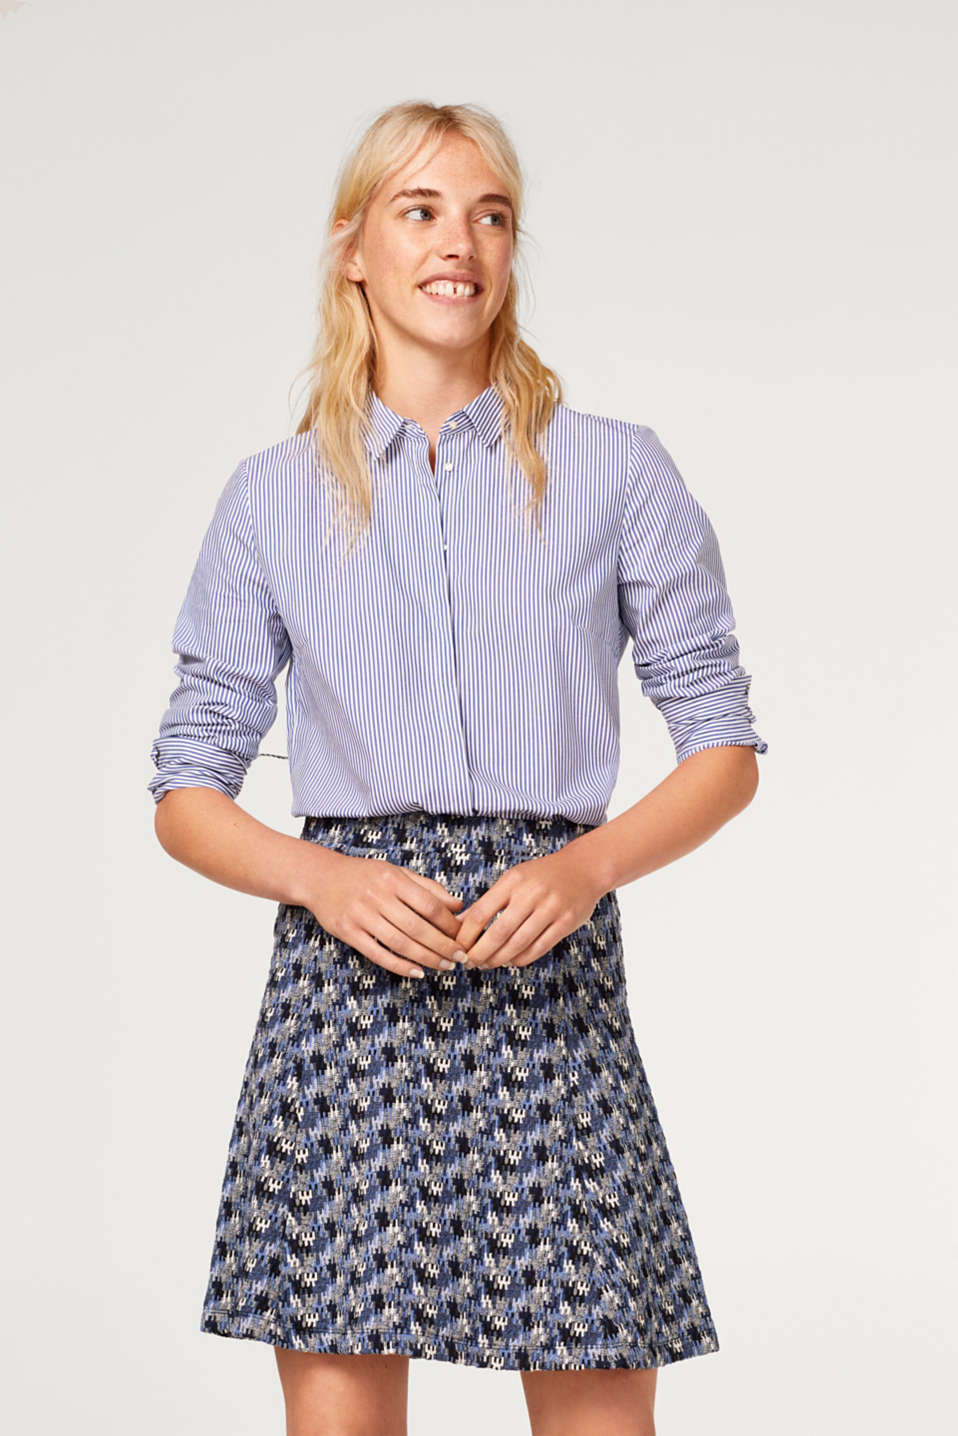 Esprit - Stretch jersey skirt with a jacquard pattern